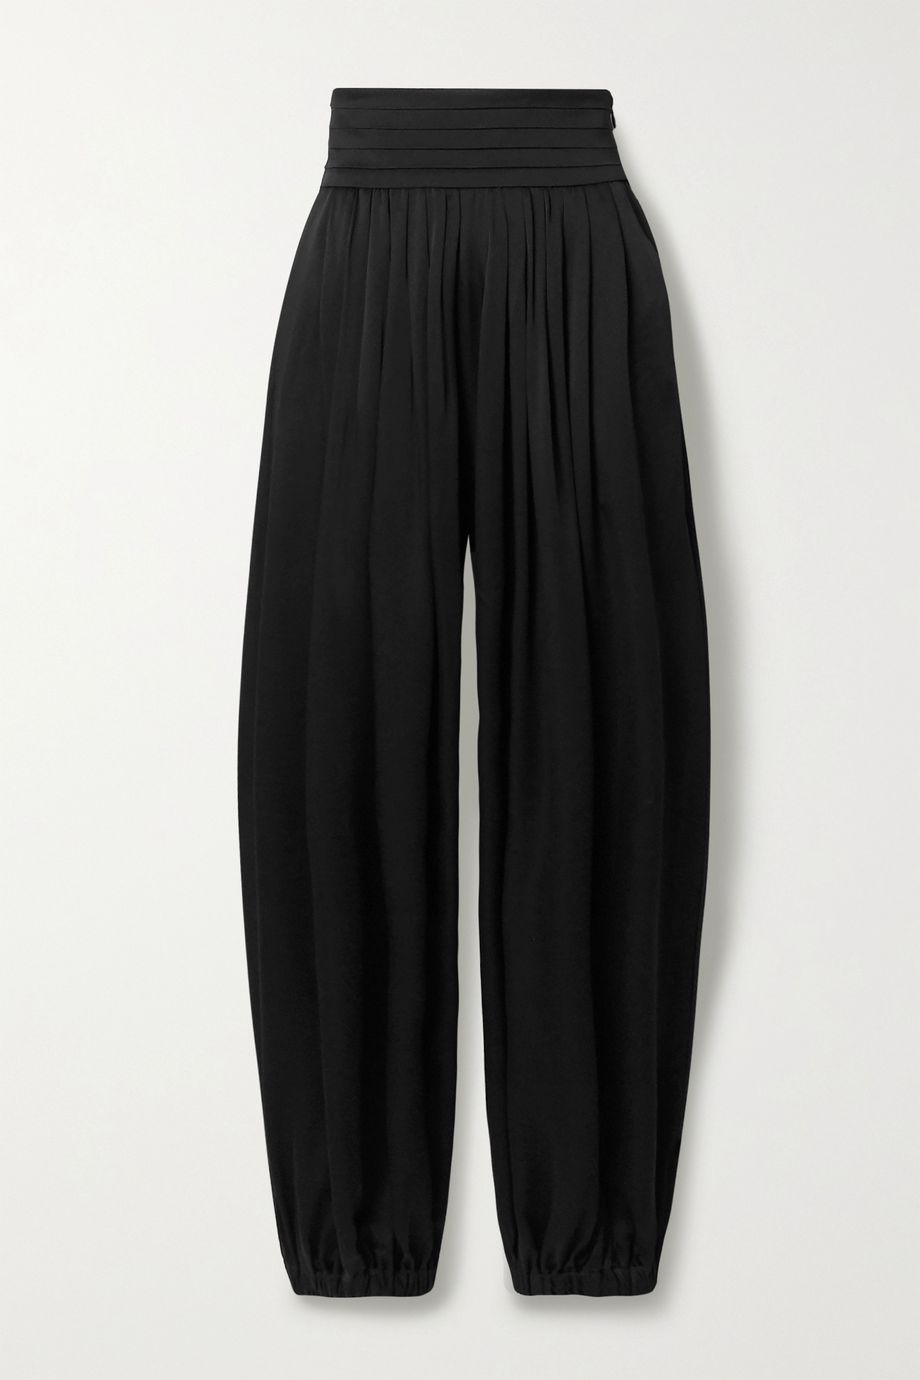 Khaite Rosie pleated satin-crepe pants